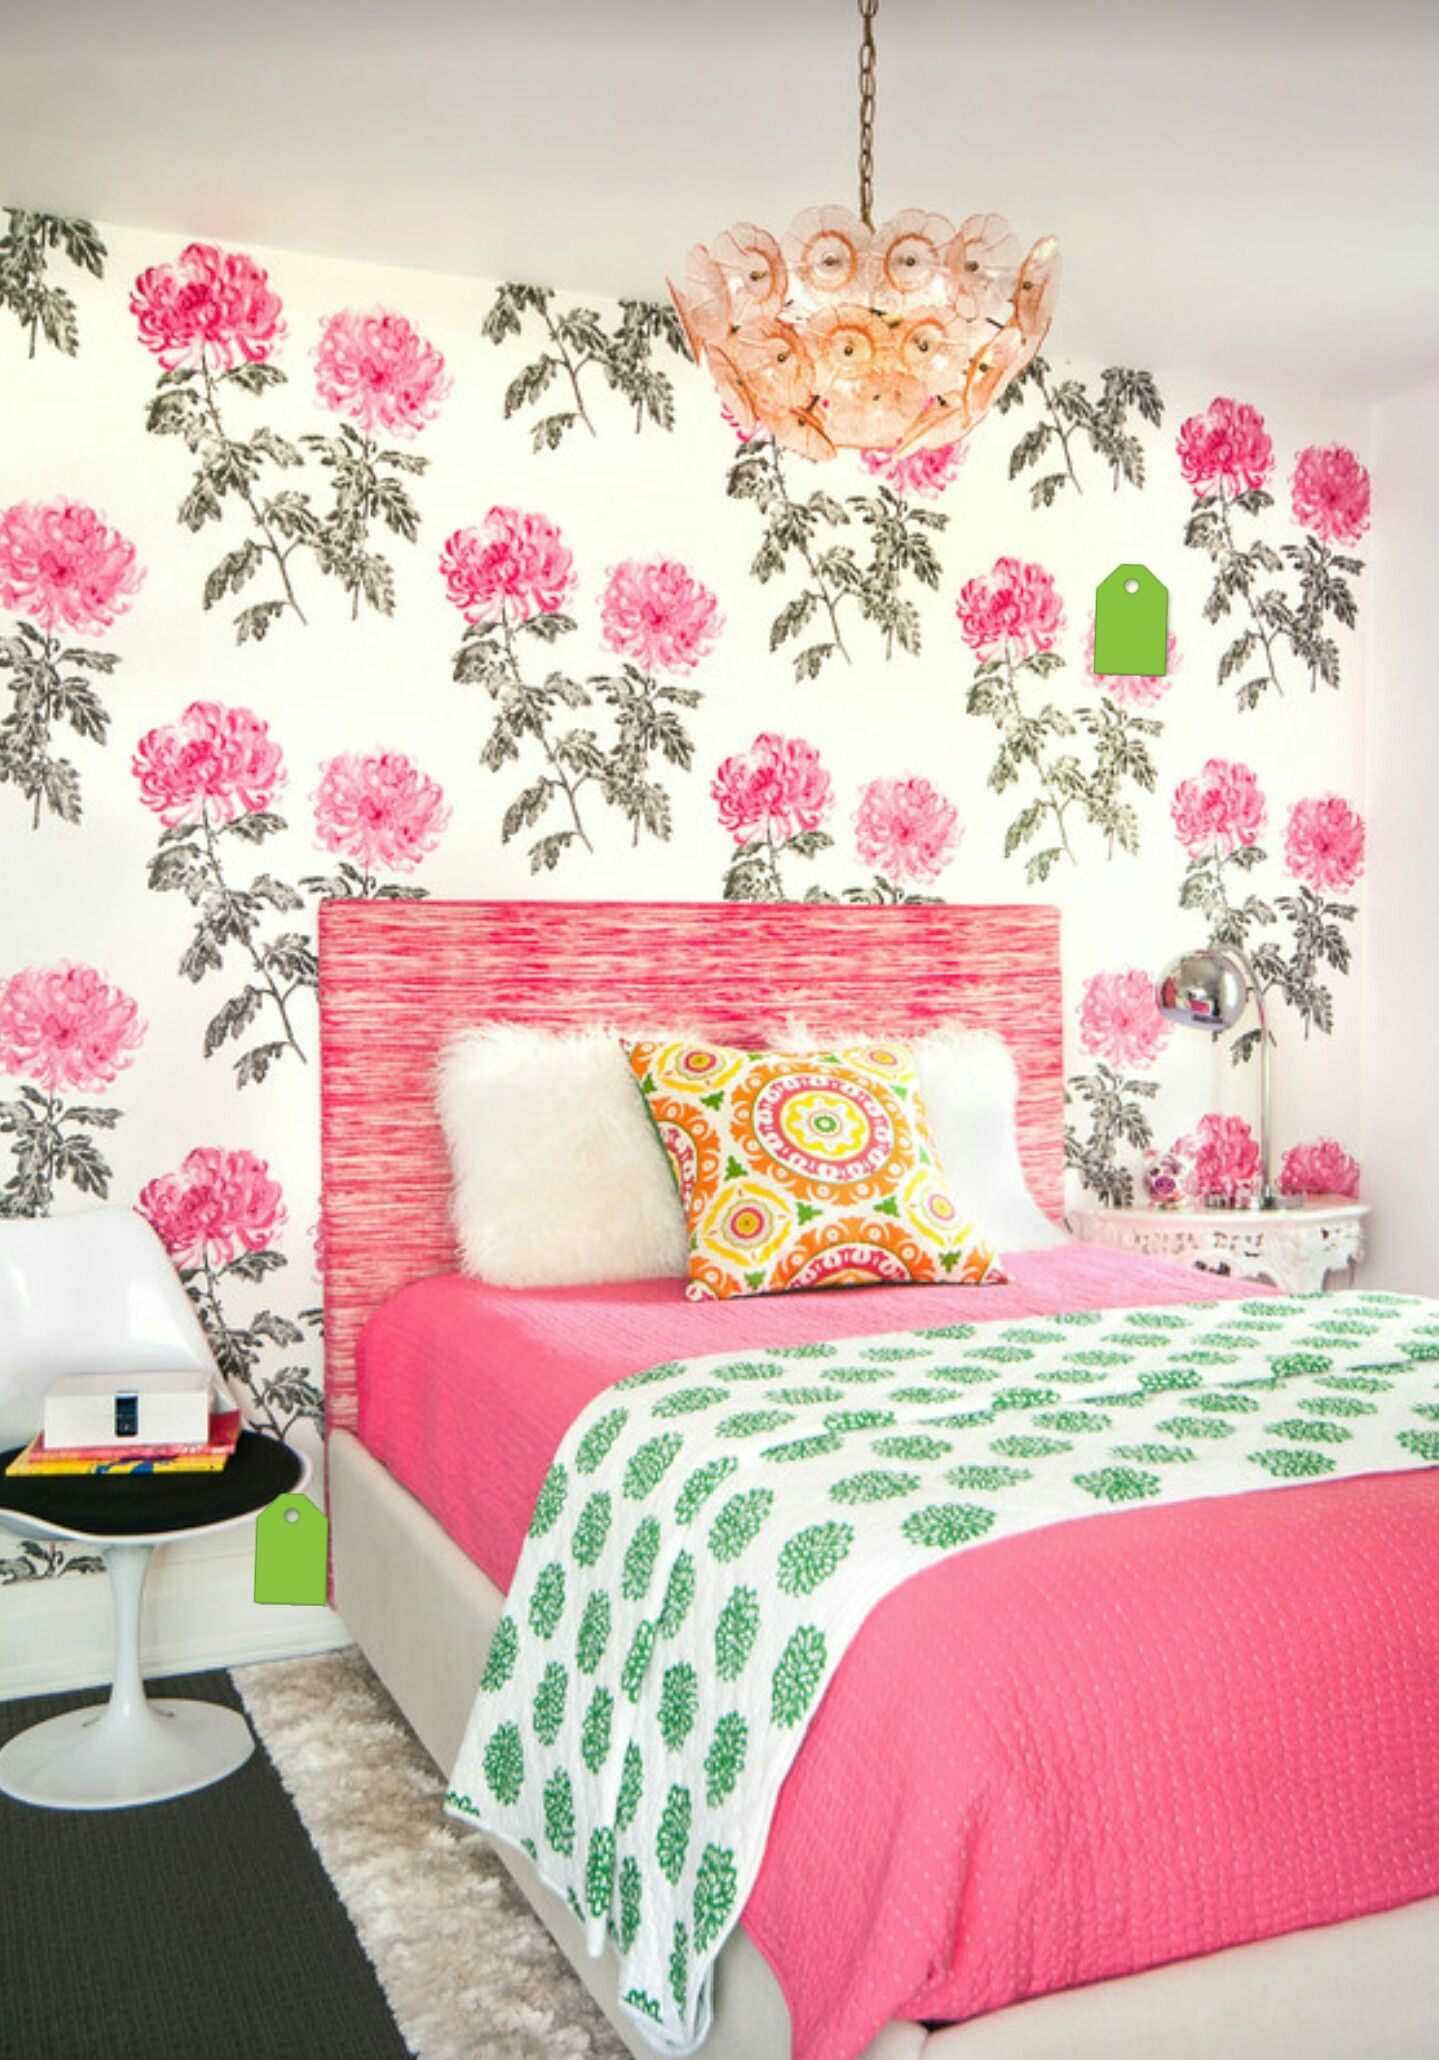 Papier peint fleuri pour ambiance girly for the home pinterest